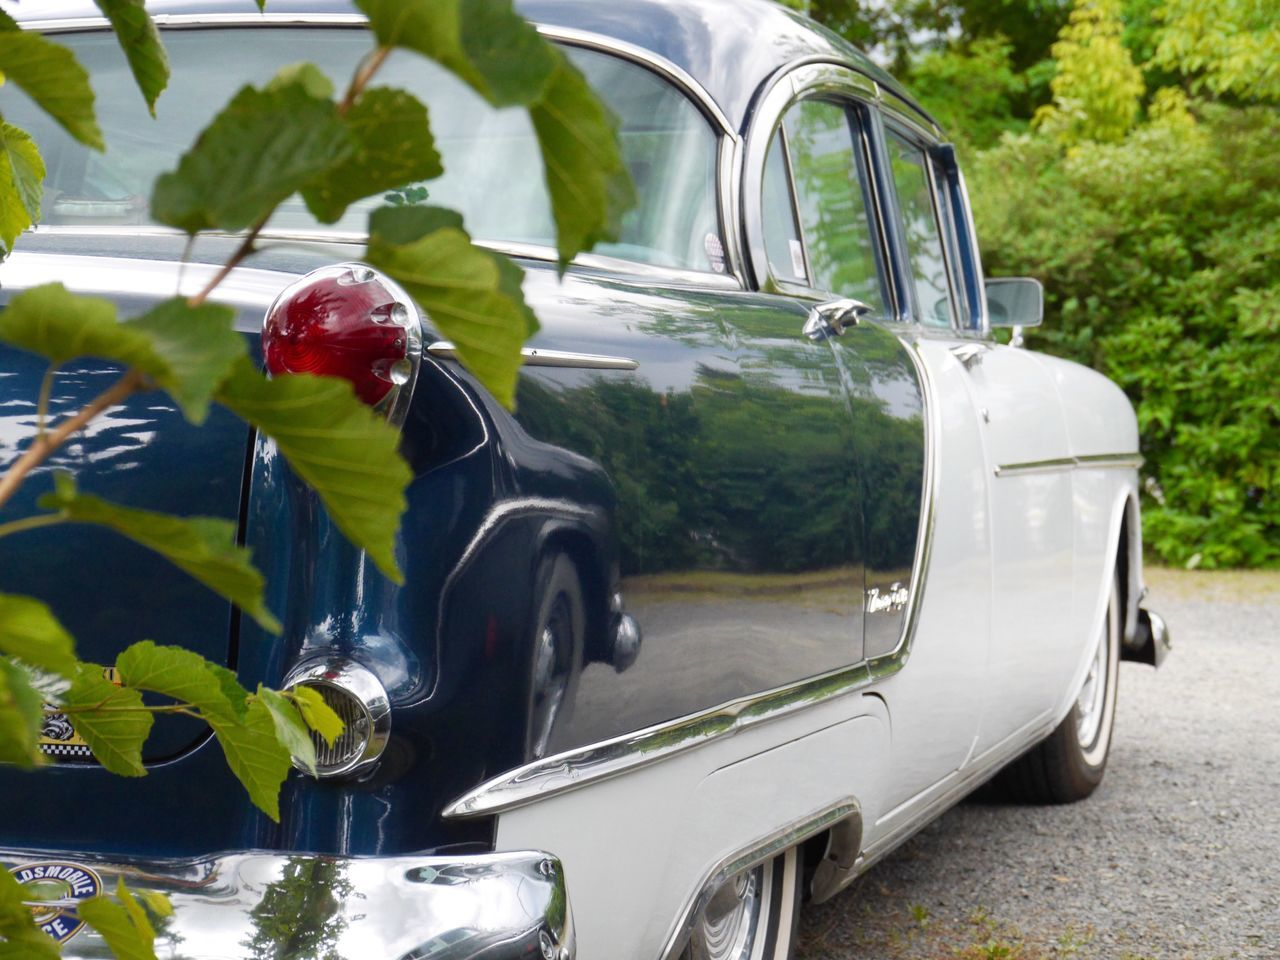 part of the fifties Fifties & Sixties Oldtimer Car Eye4photography  Tadaa Community The Drive